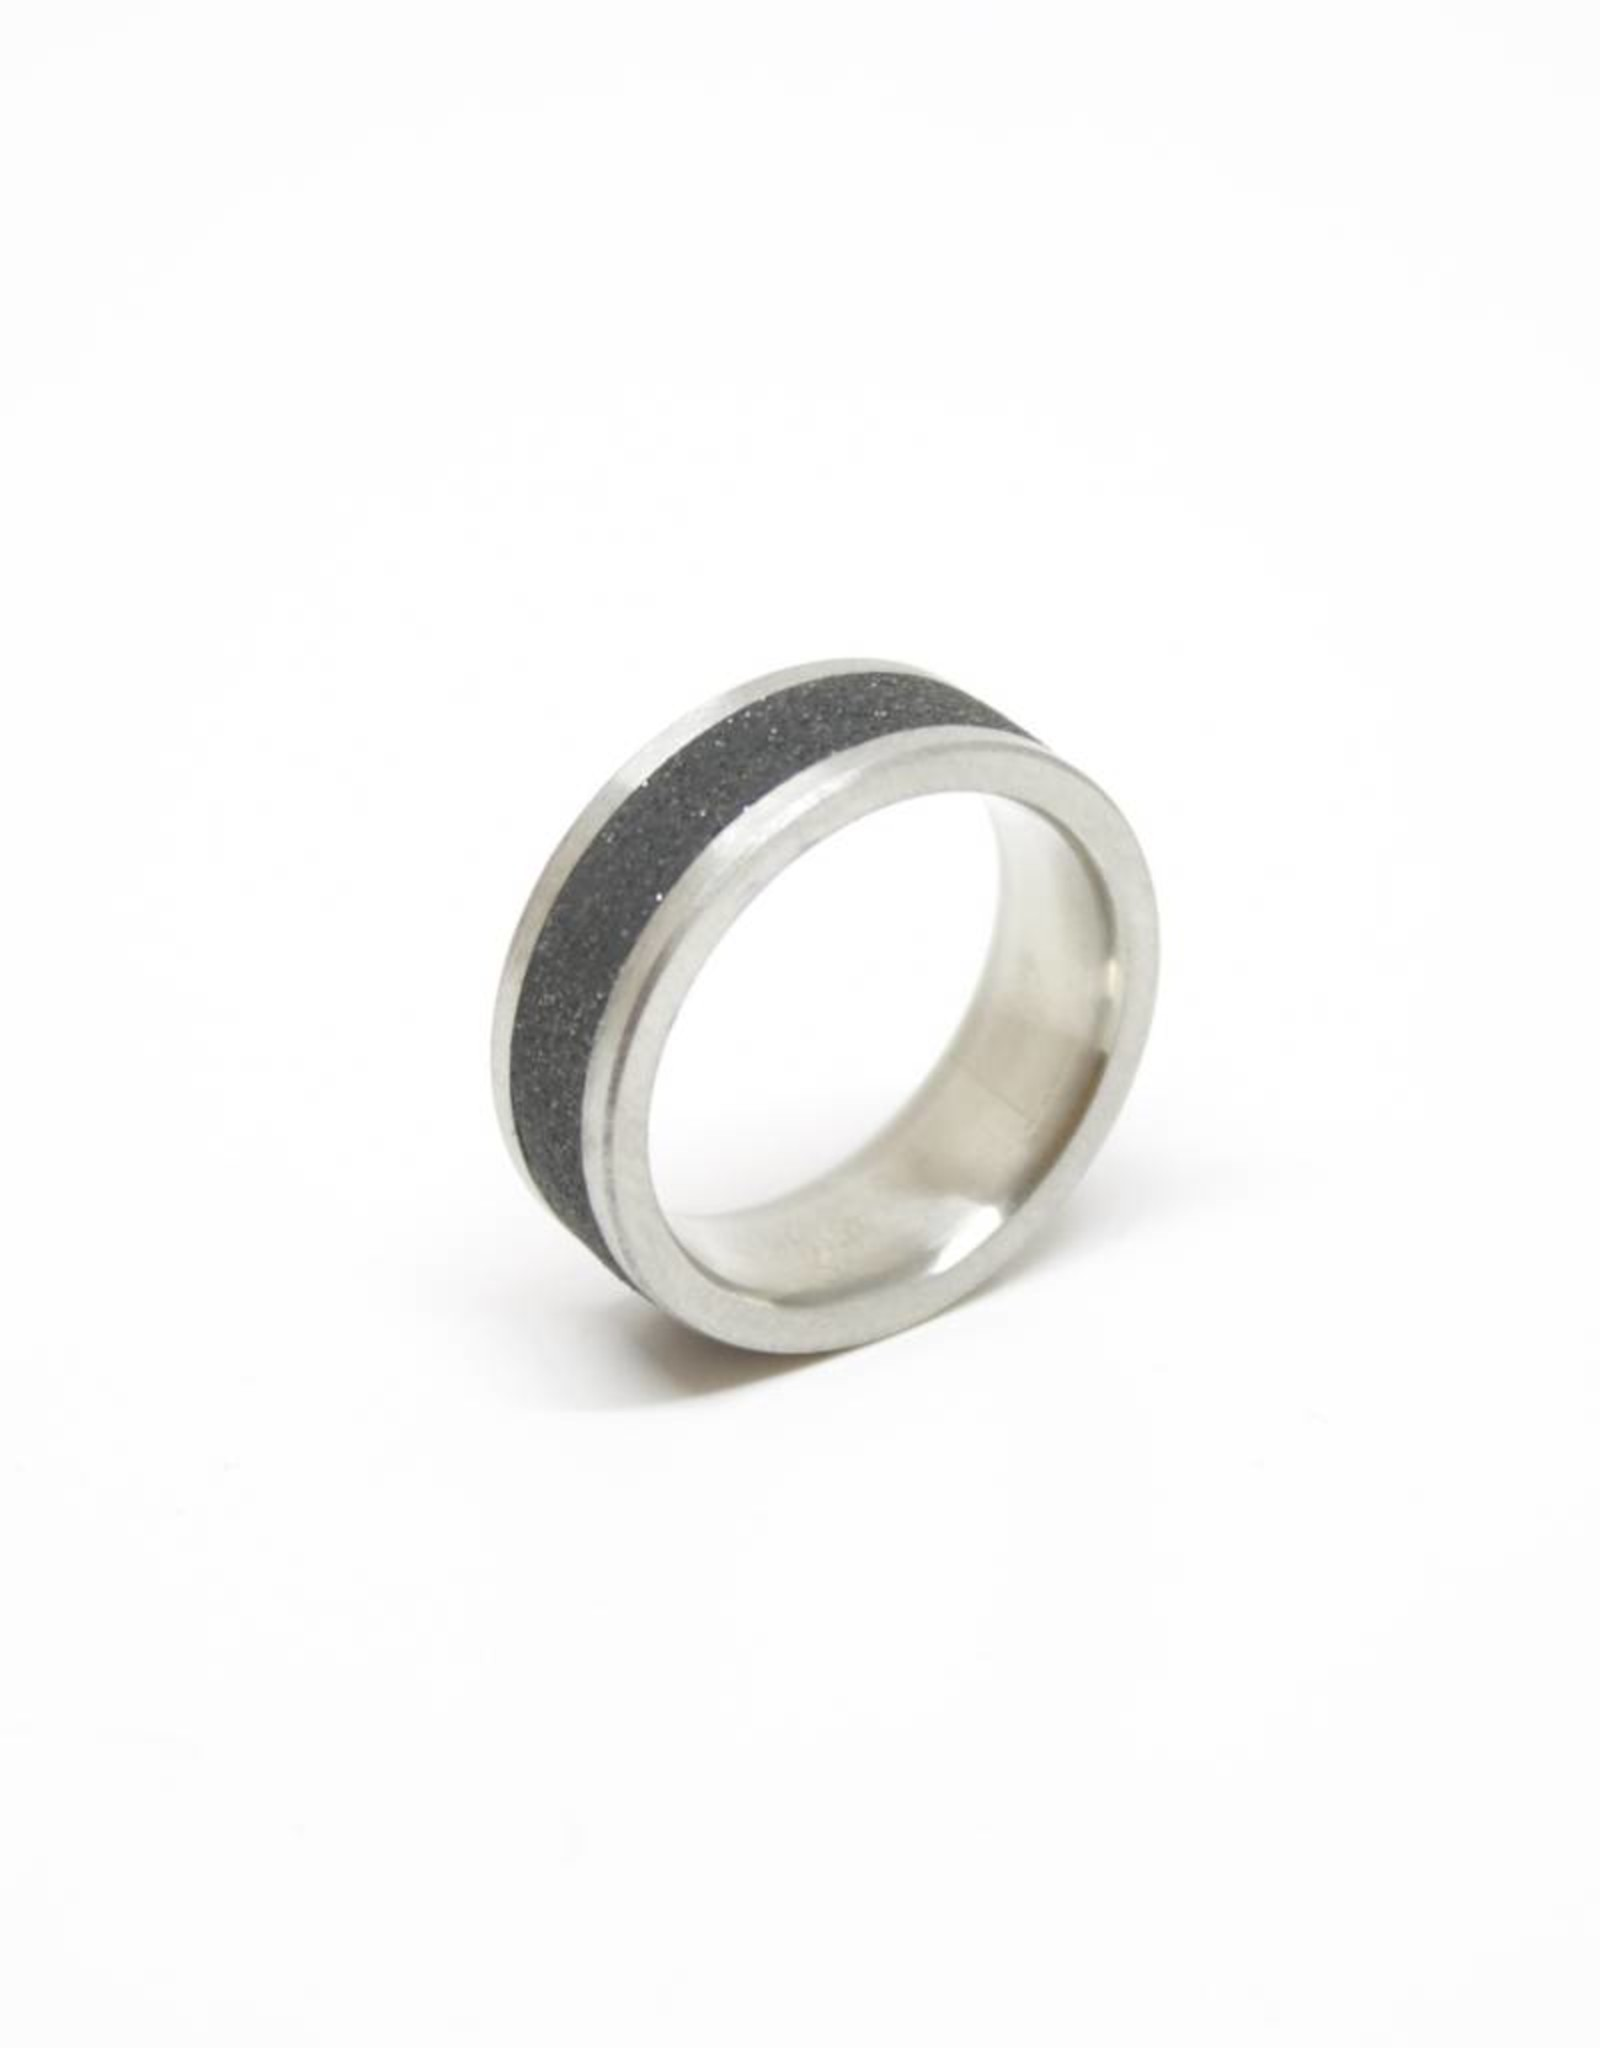 Konzuk Coal Black Concrete Ring with Diamond Dust - Thick